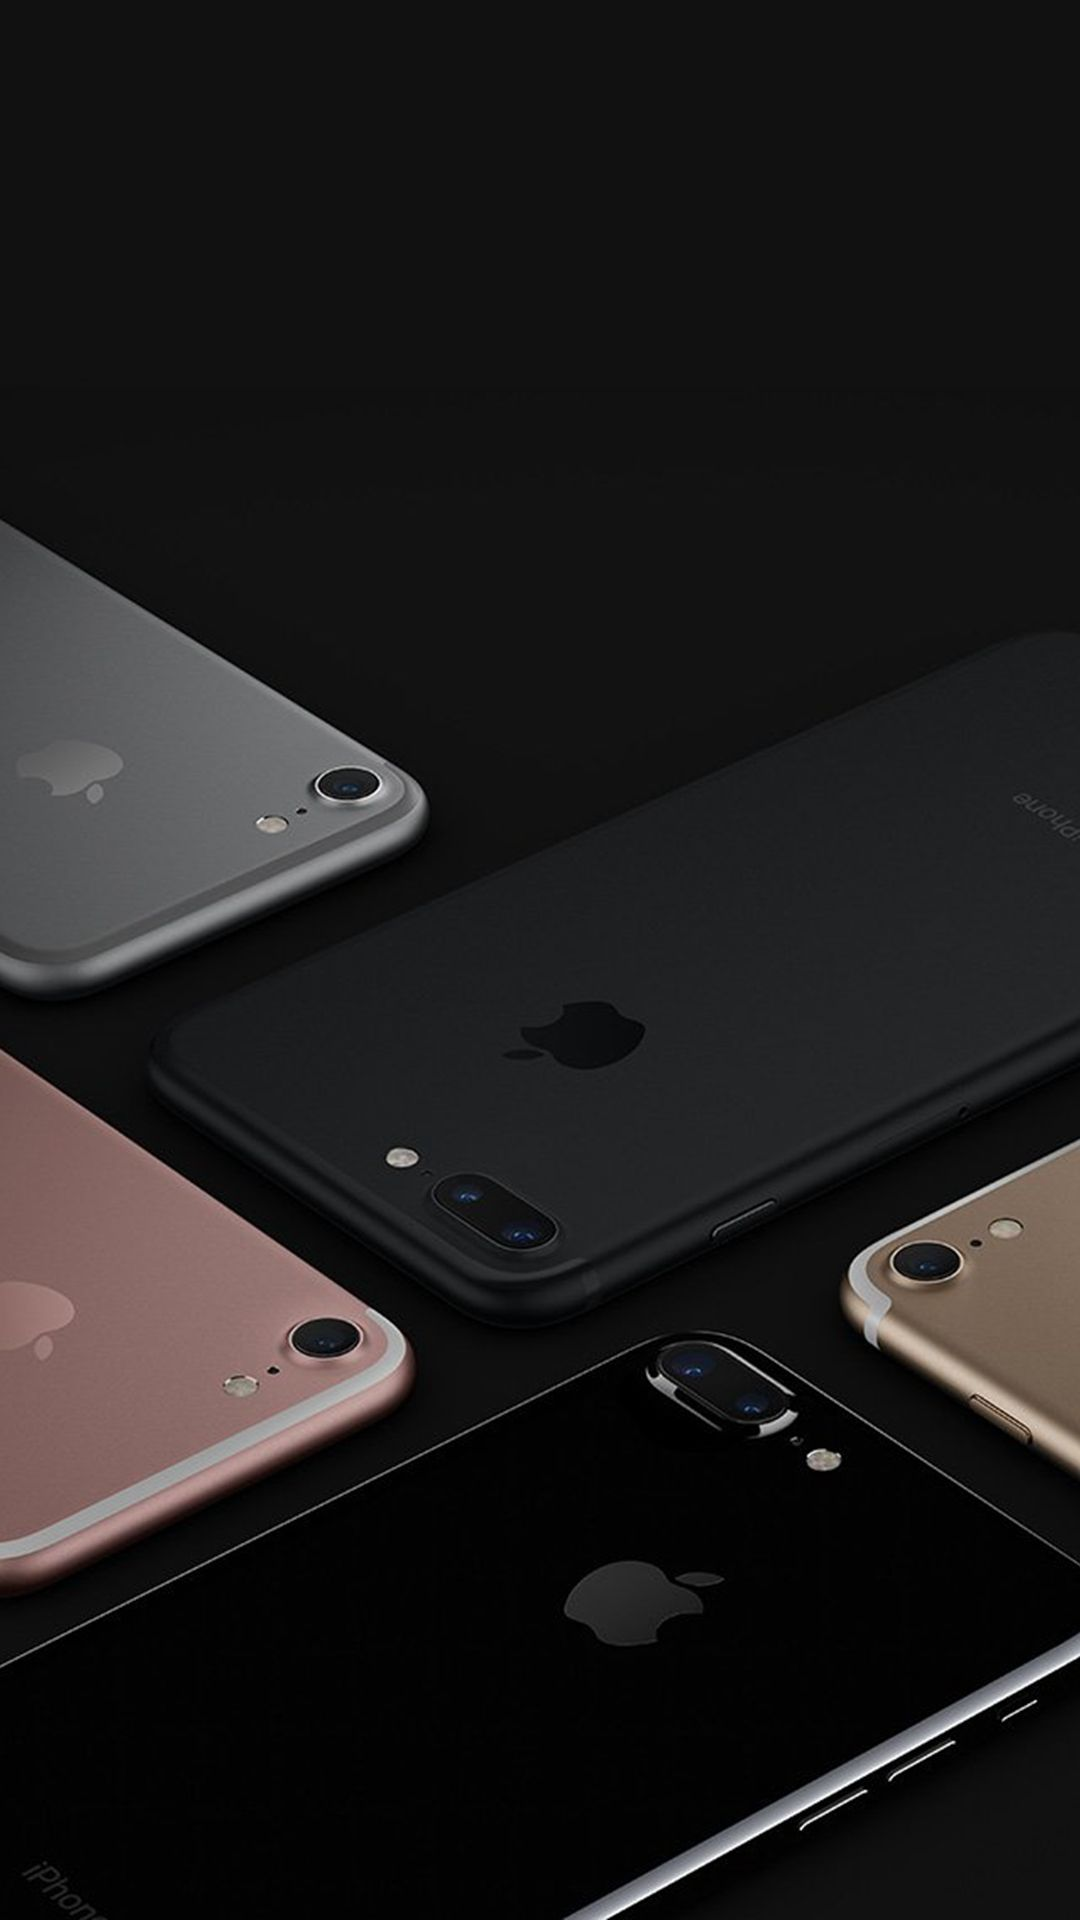 Poll results apple had better be preparing a space black iphone 7 - Apple Iphone7 Jetblack Gold Pink Silver Dark Ios10 Art Illustration Iphone 6 Plus